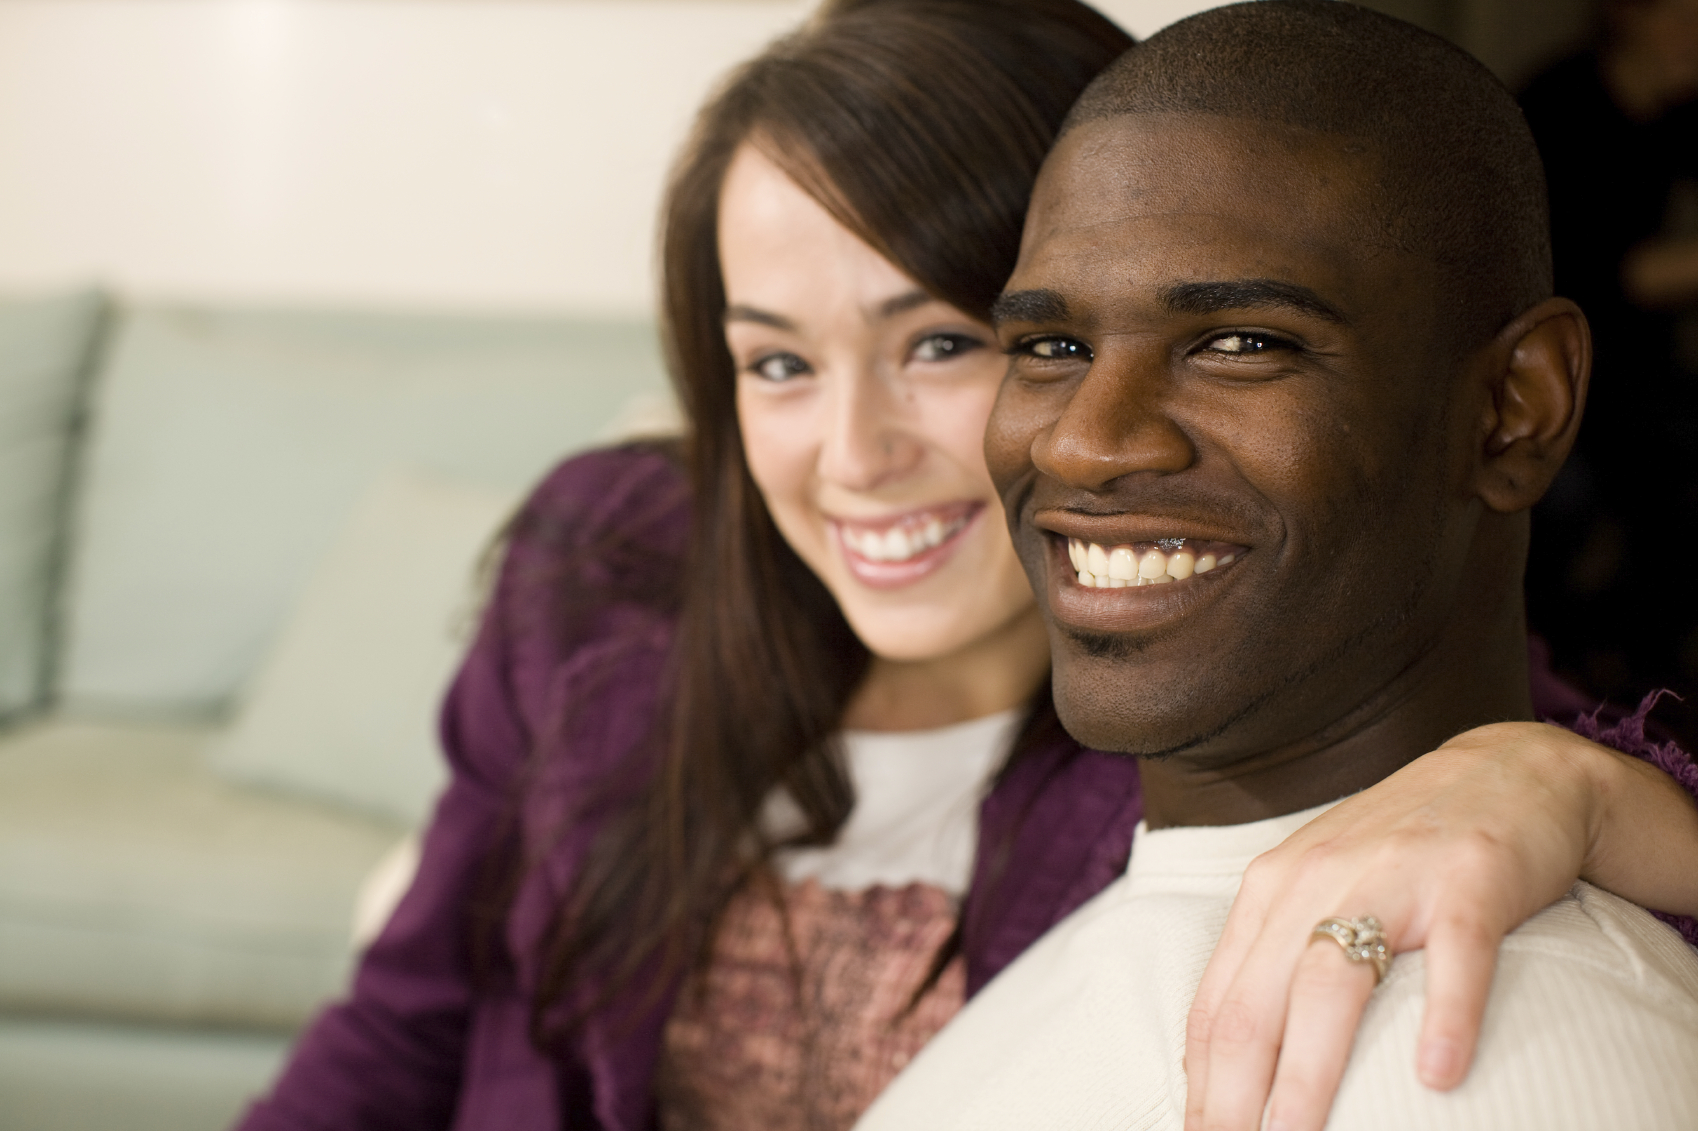 New Study Examines Interracial Marriage And Cohabitation Patterns Among America's Diverse Black Populations